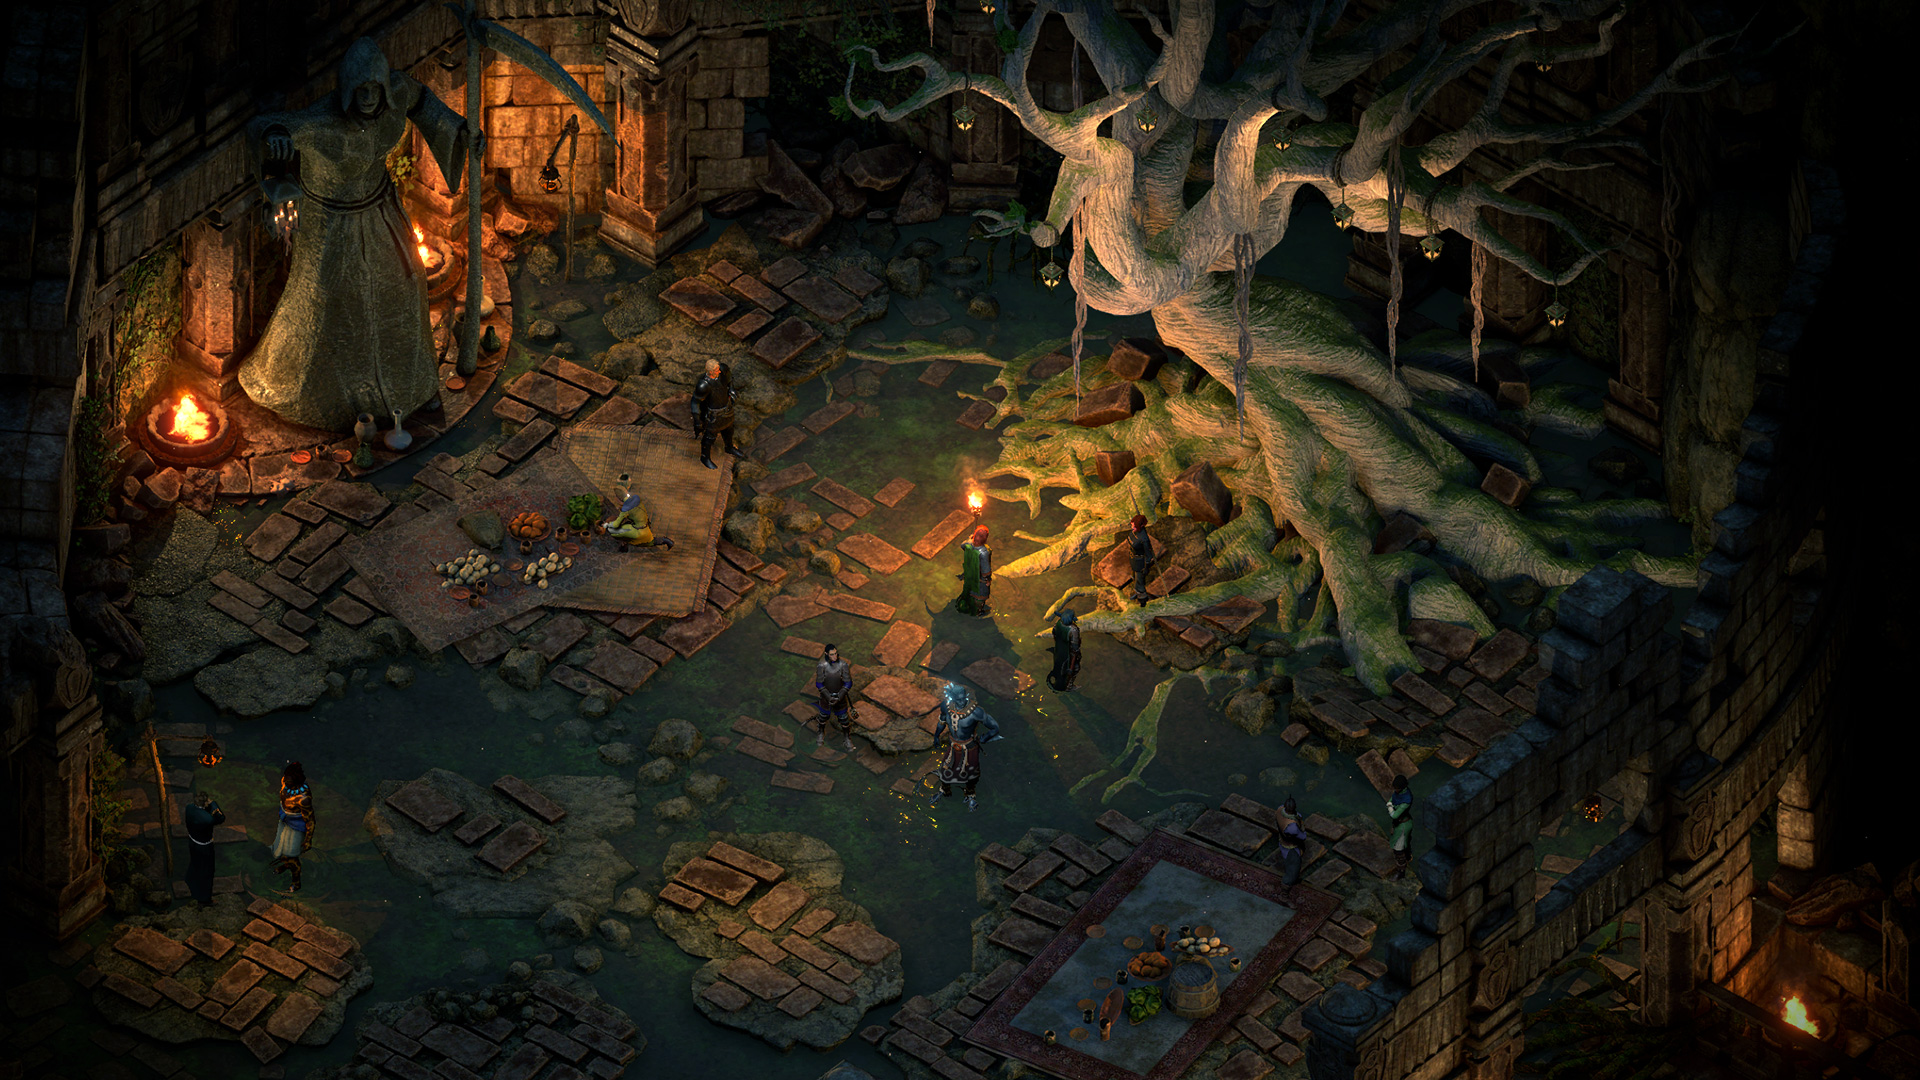 Pillars Of Eternity Wallpaper: Pillars Of Eternity II: Deadfire HD Wallpaper